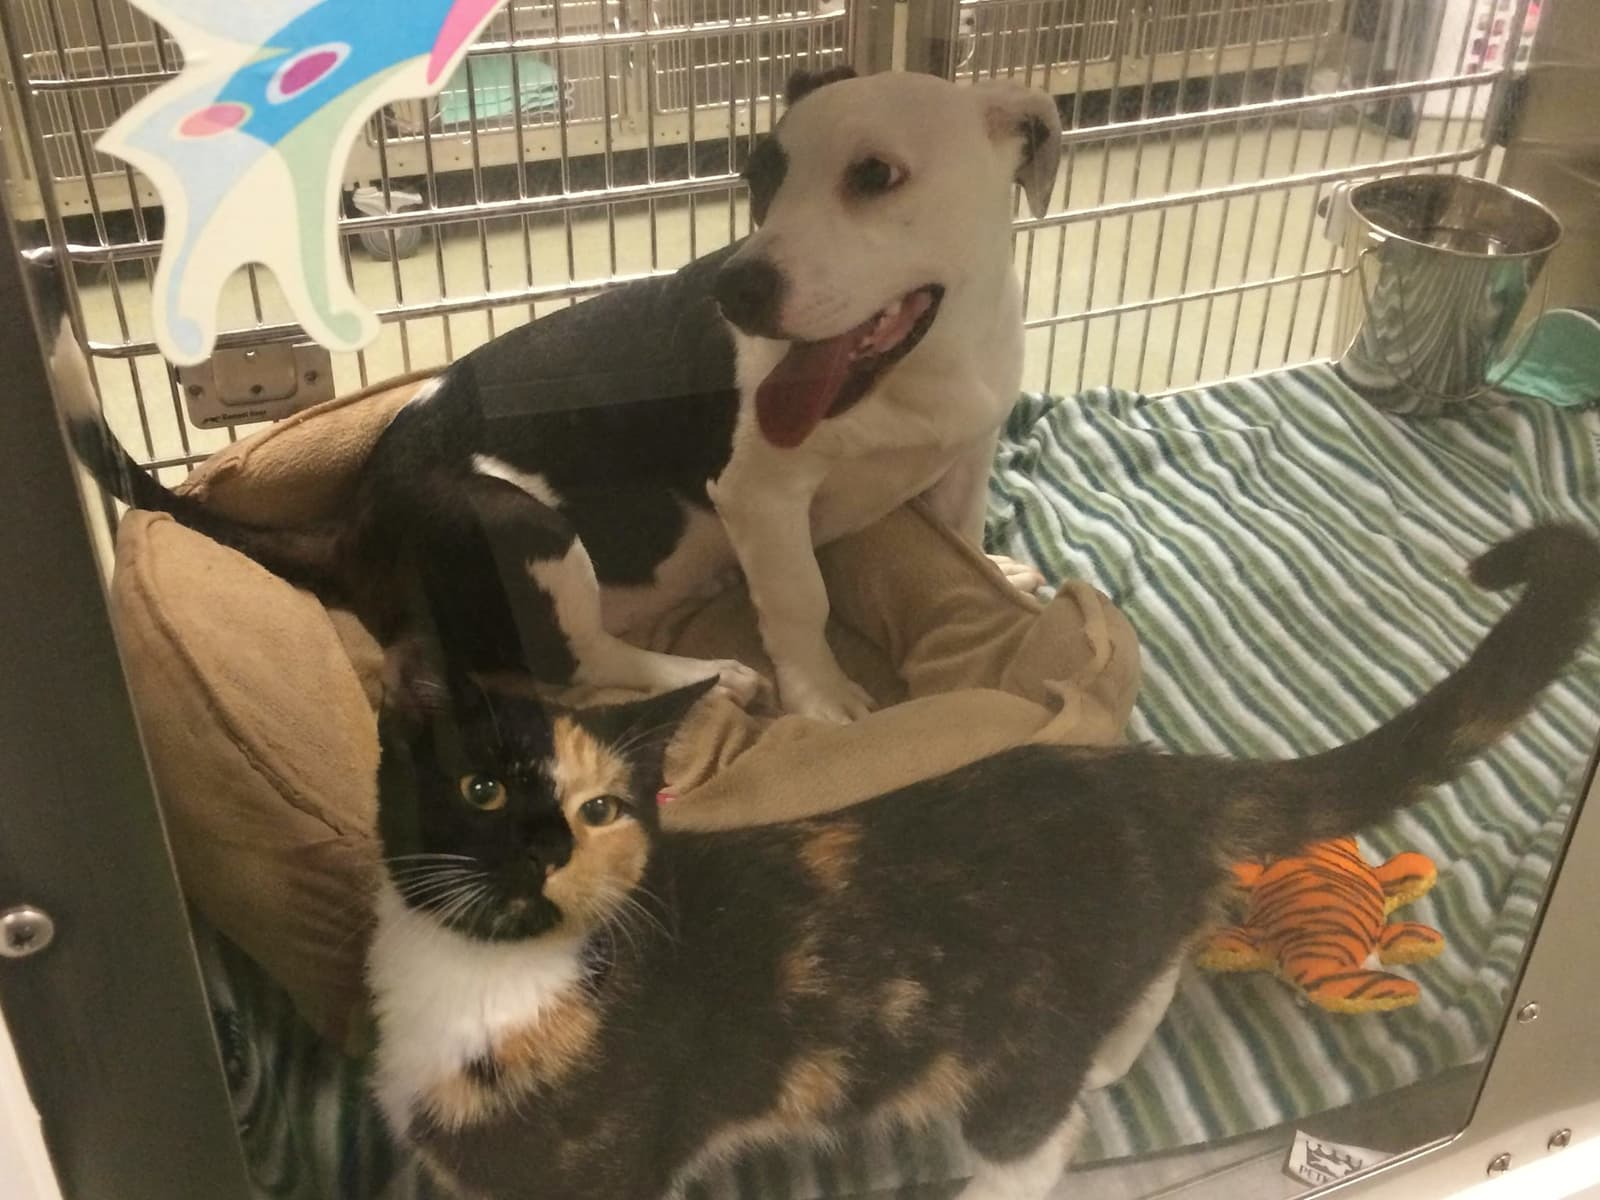 Dog and cat best friends are found together as strays